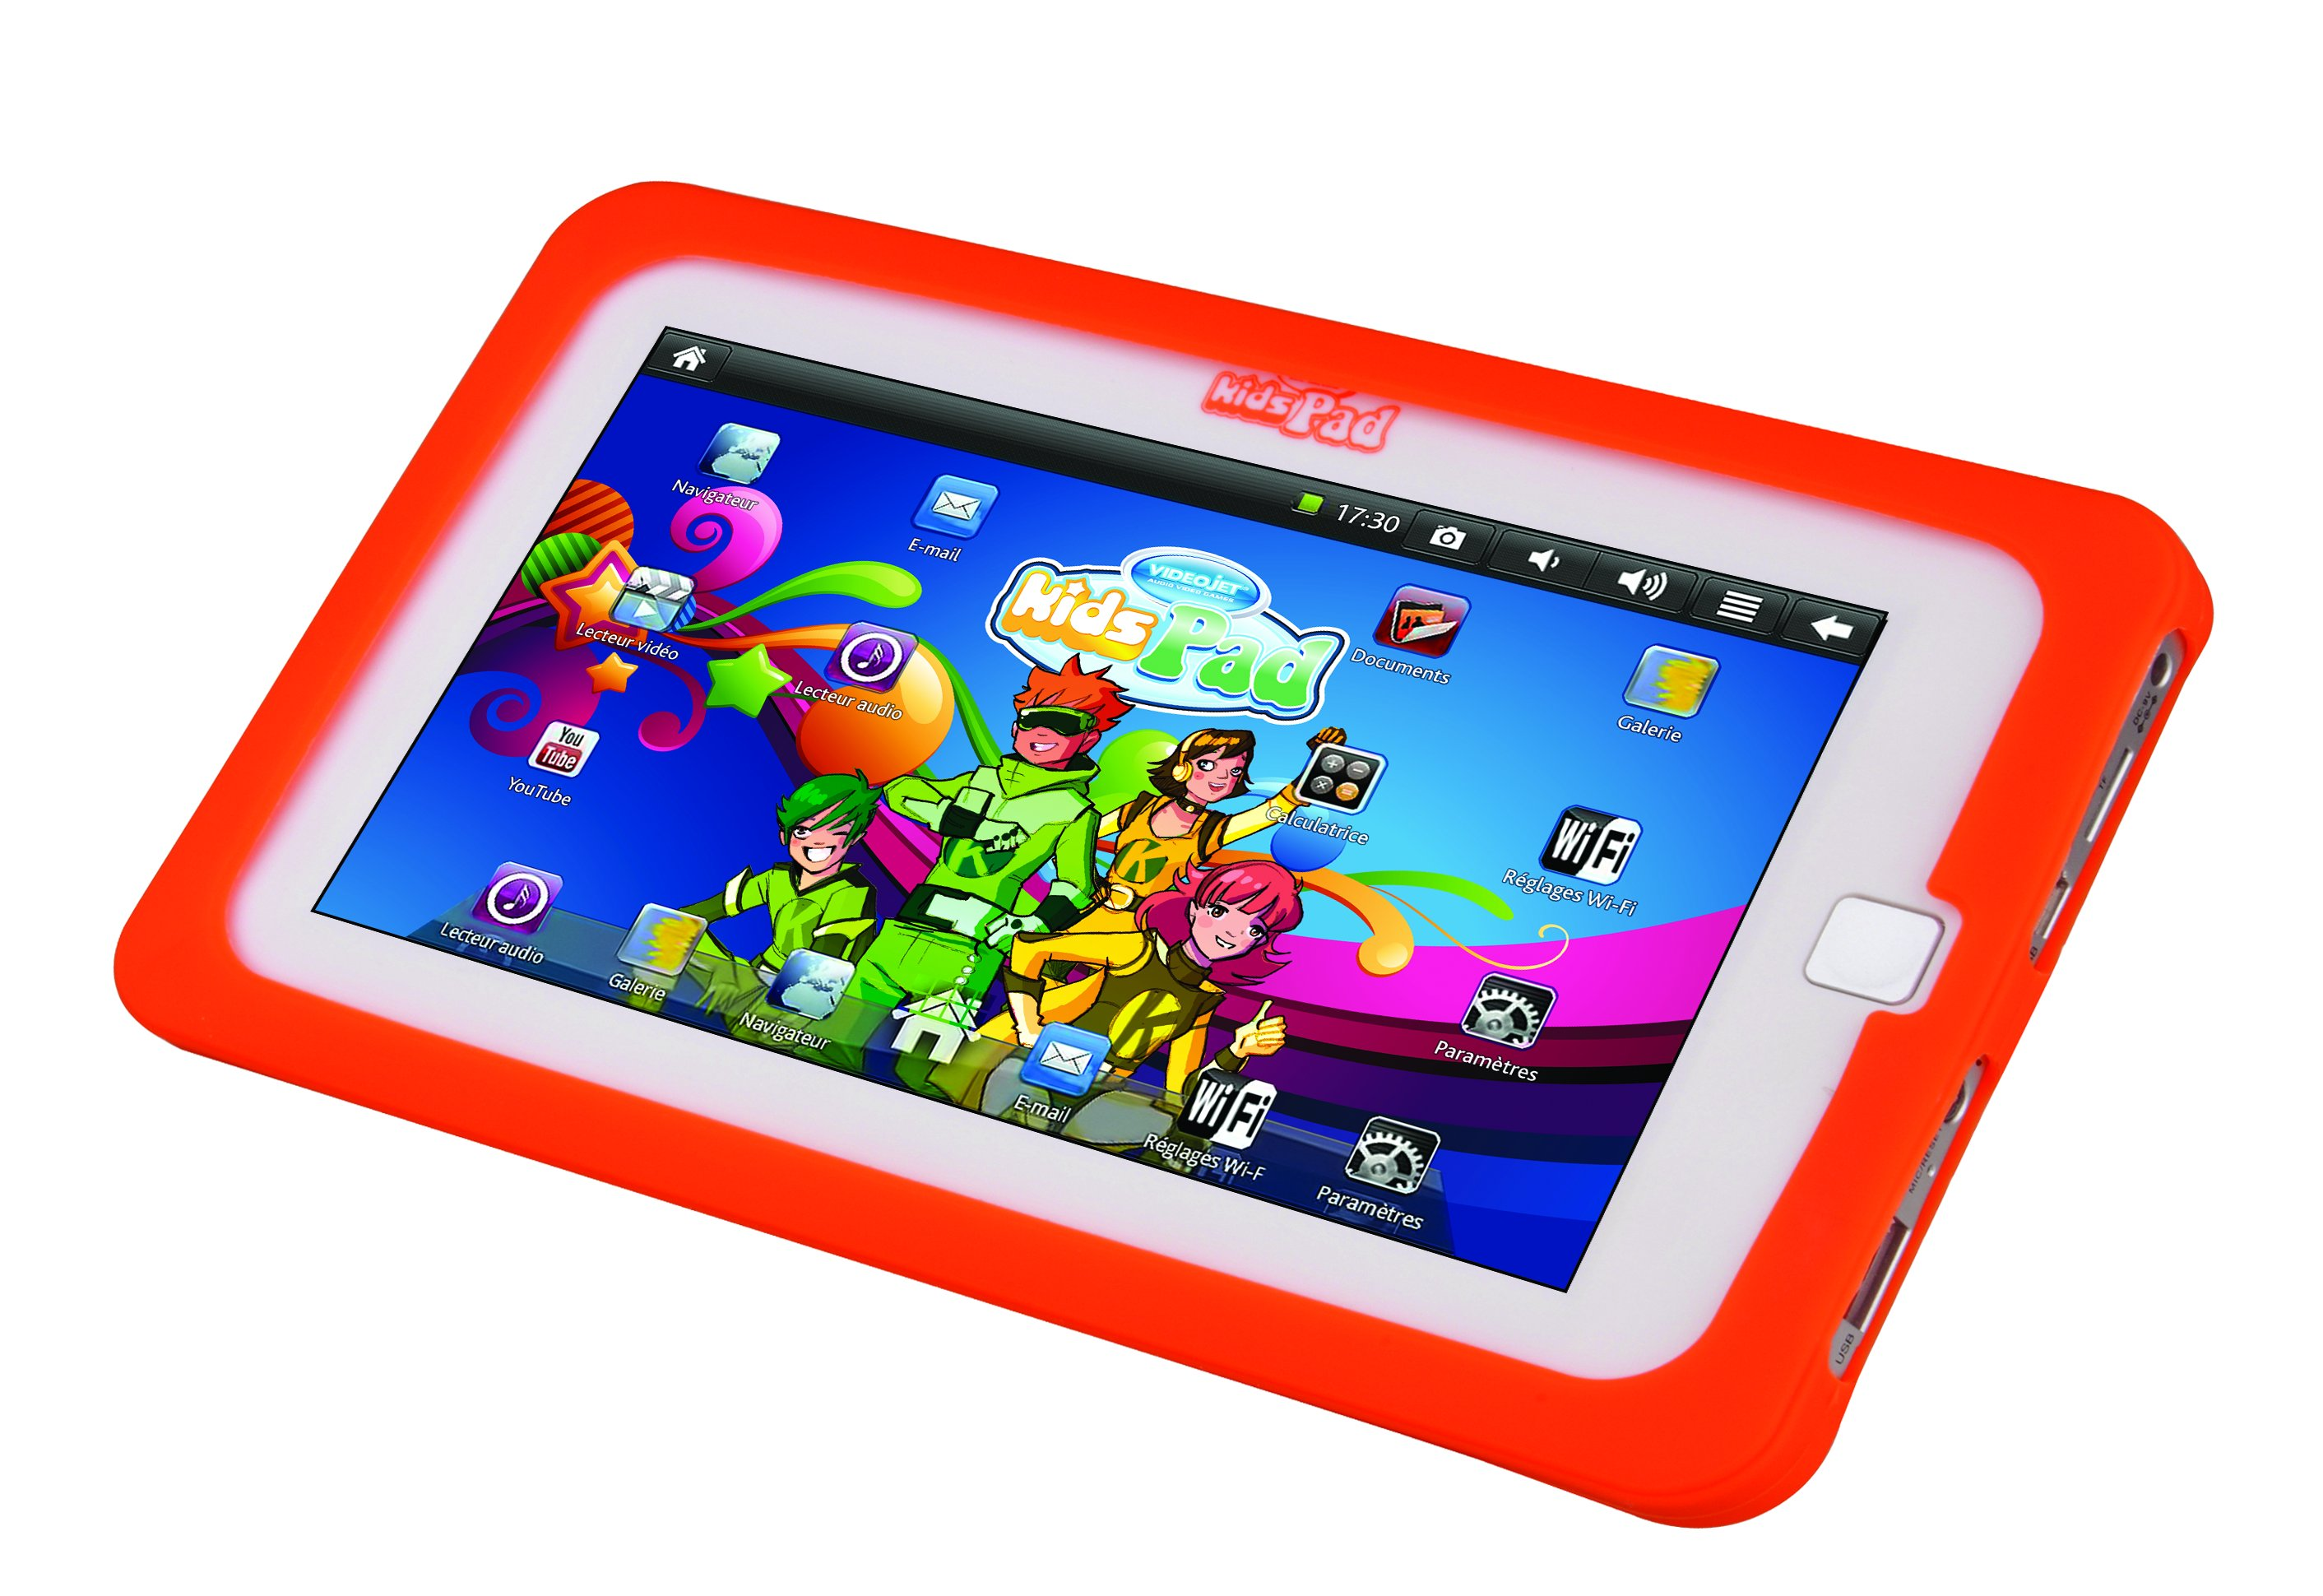 La tablette Kids Pad en s